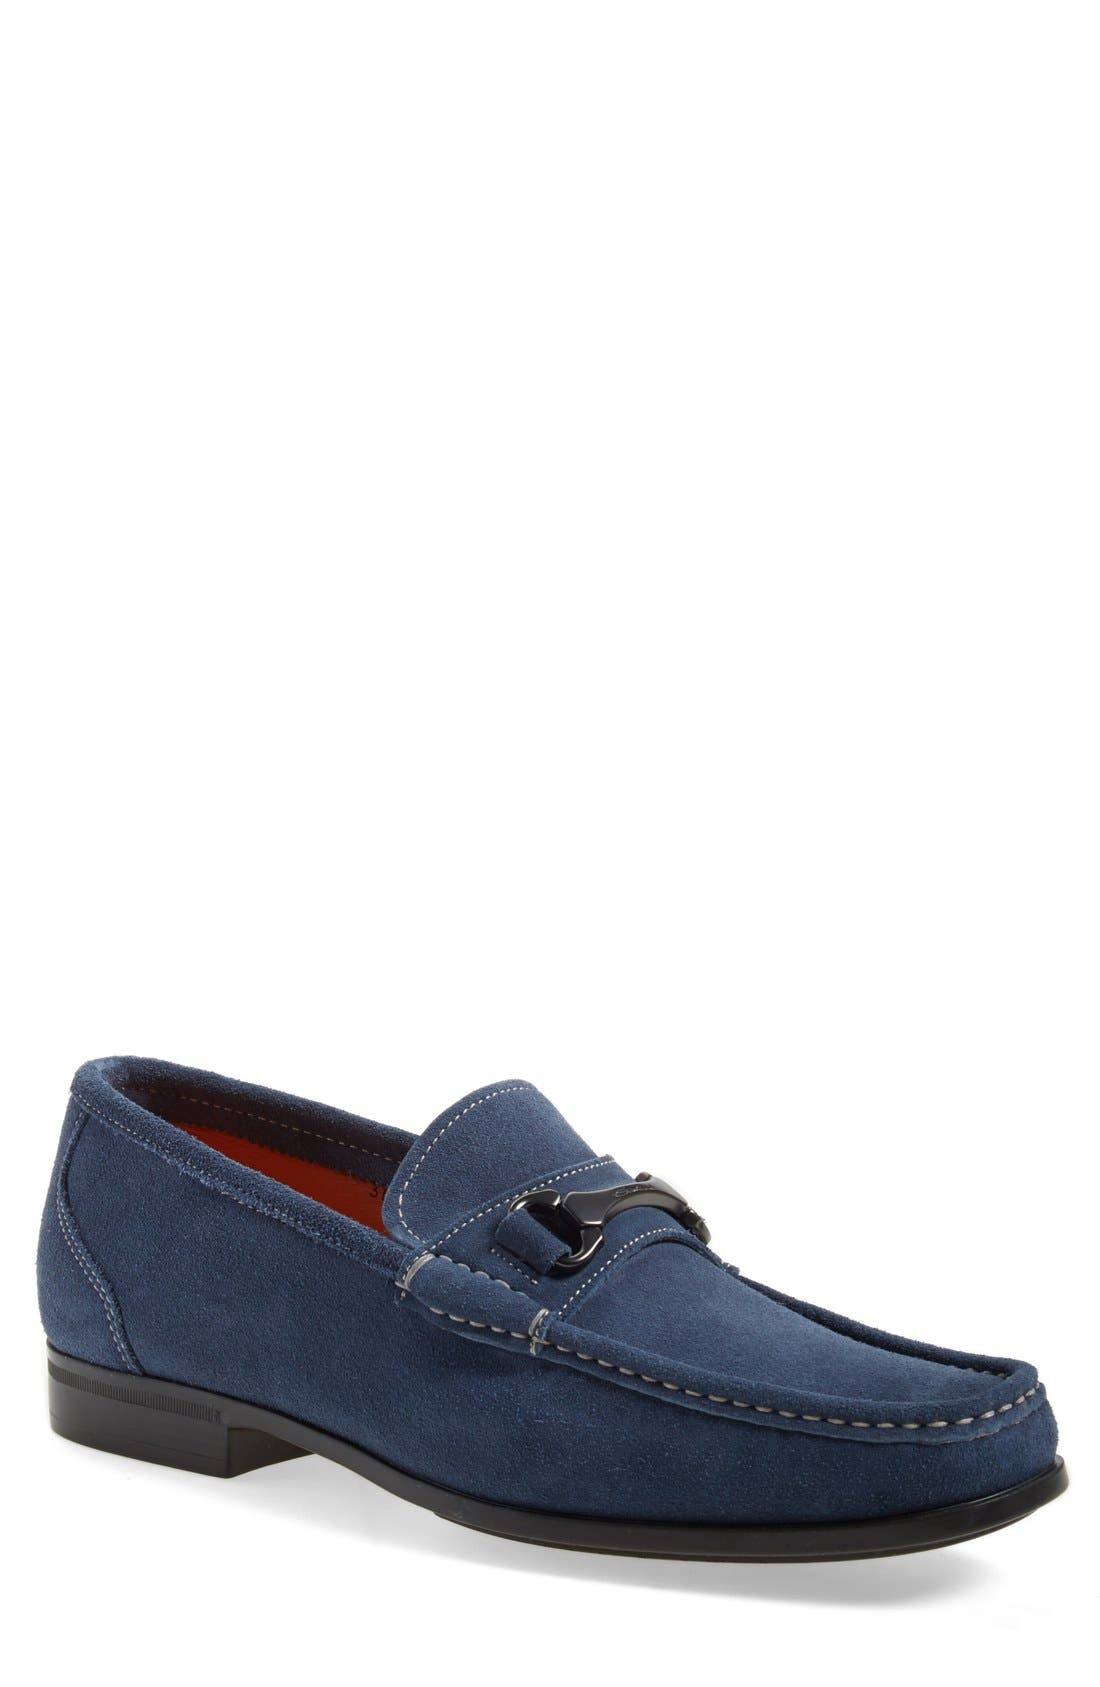 Alternate Image 1 Selected - Santoni 'Tahoe' Bit Loafer